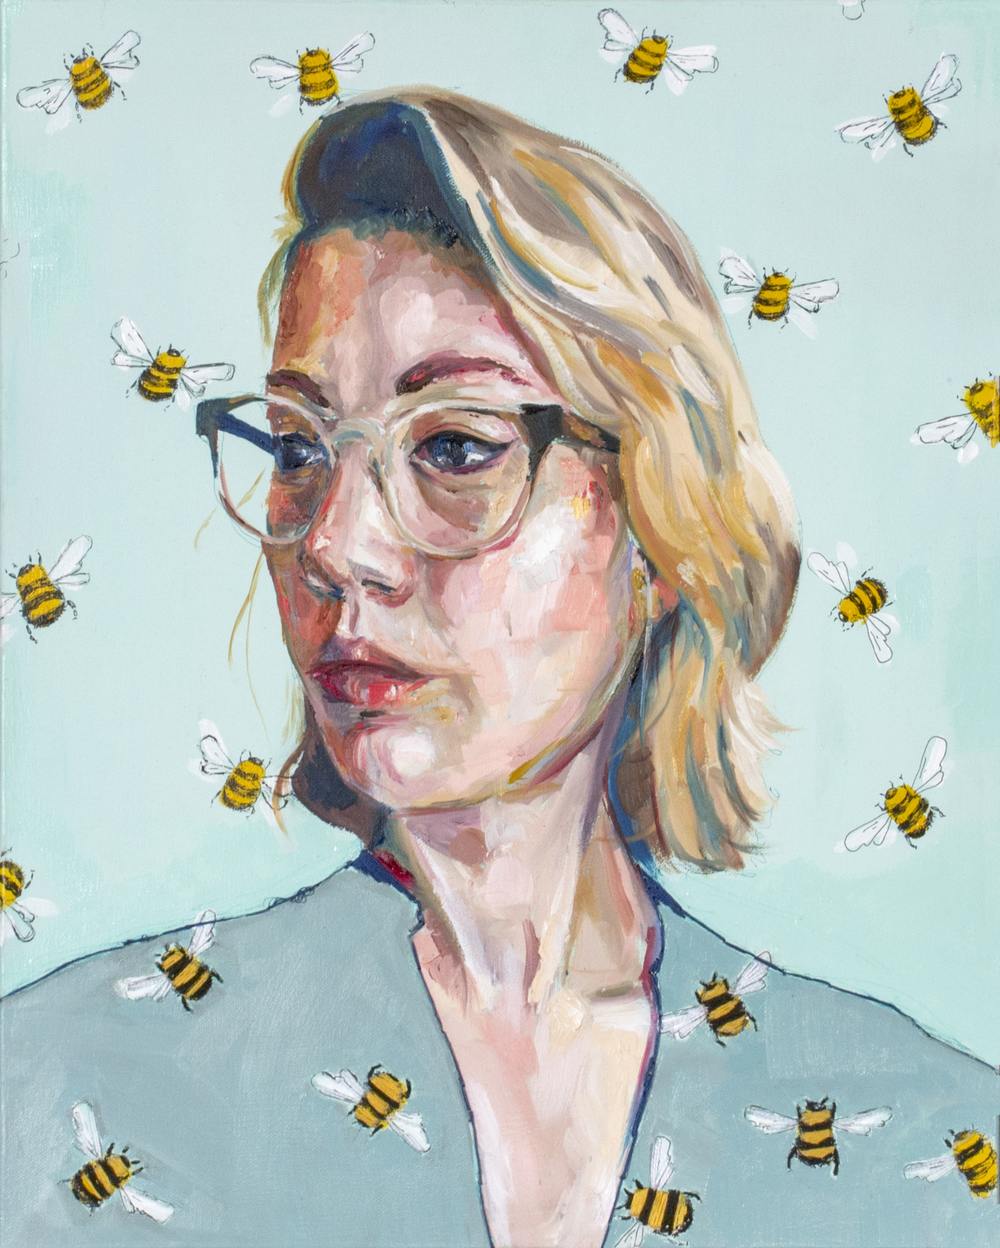 "<i>Self Portrait with Bees</i><br>16"" x 20""<br>Oil on Canvas with Embroidery<br>2015"